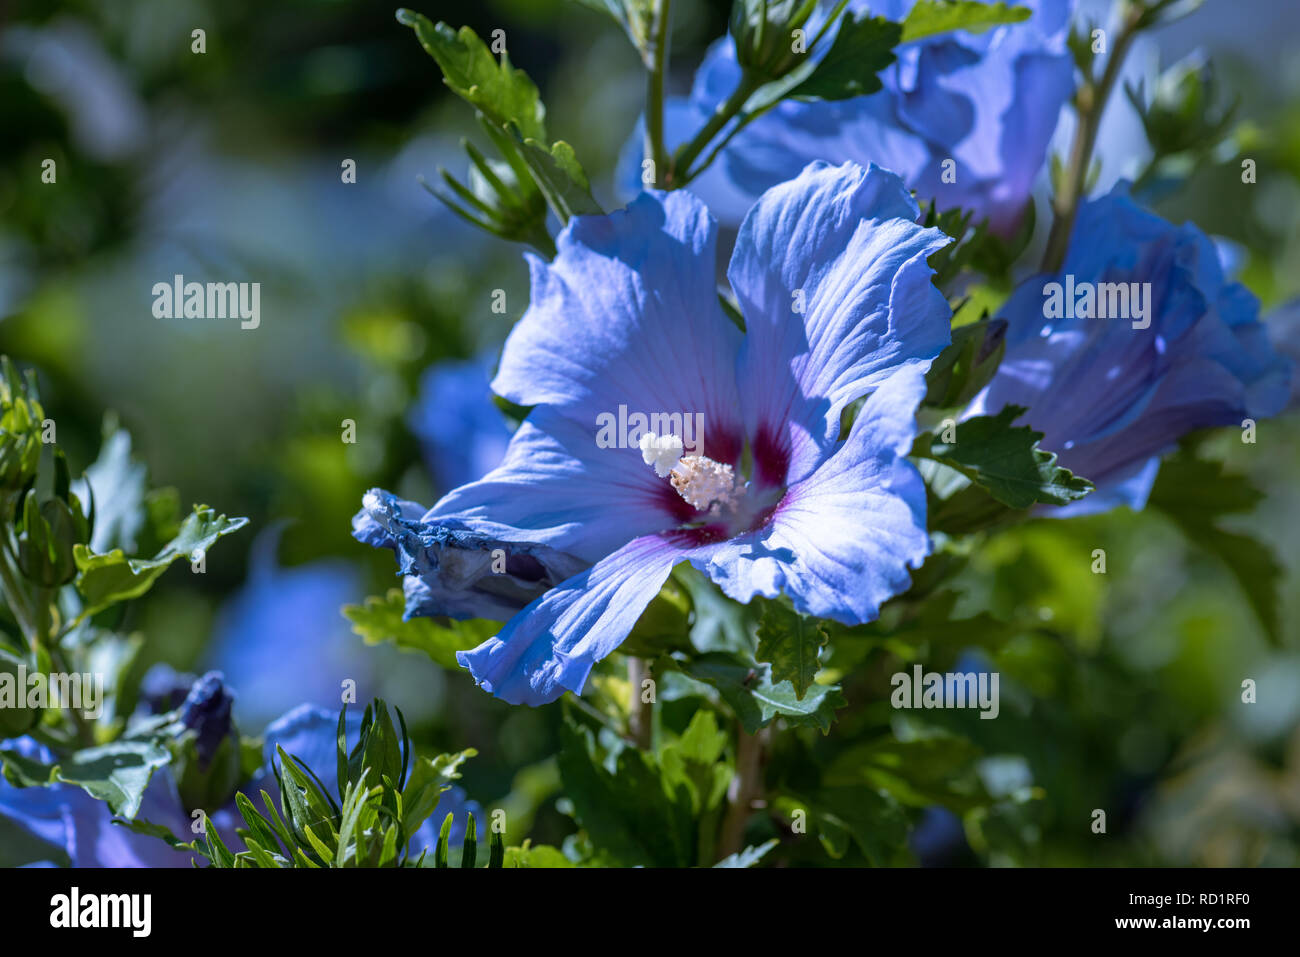 Color Outdoor Natural Floral Close Up Image Of Blue Purple Hibiscus